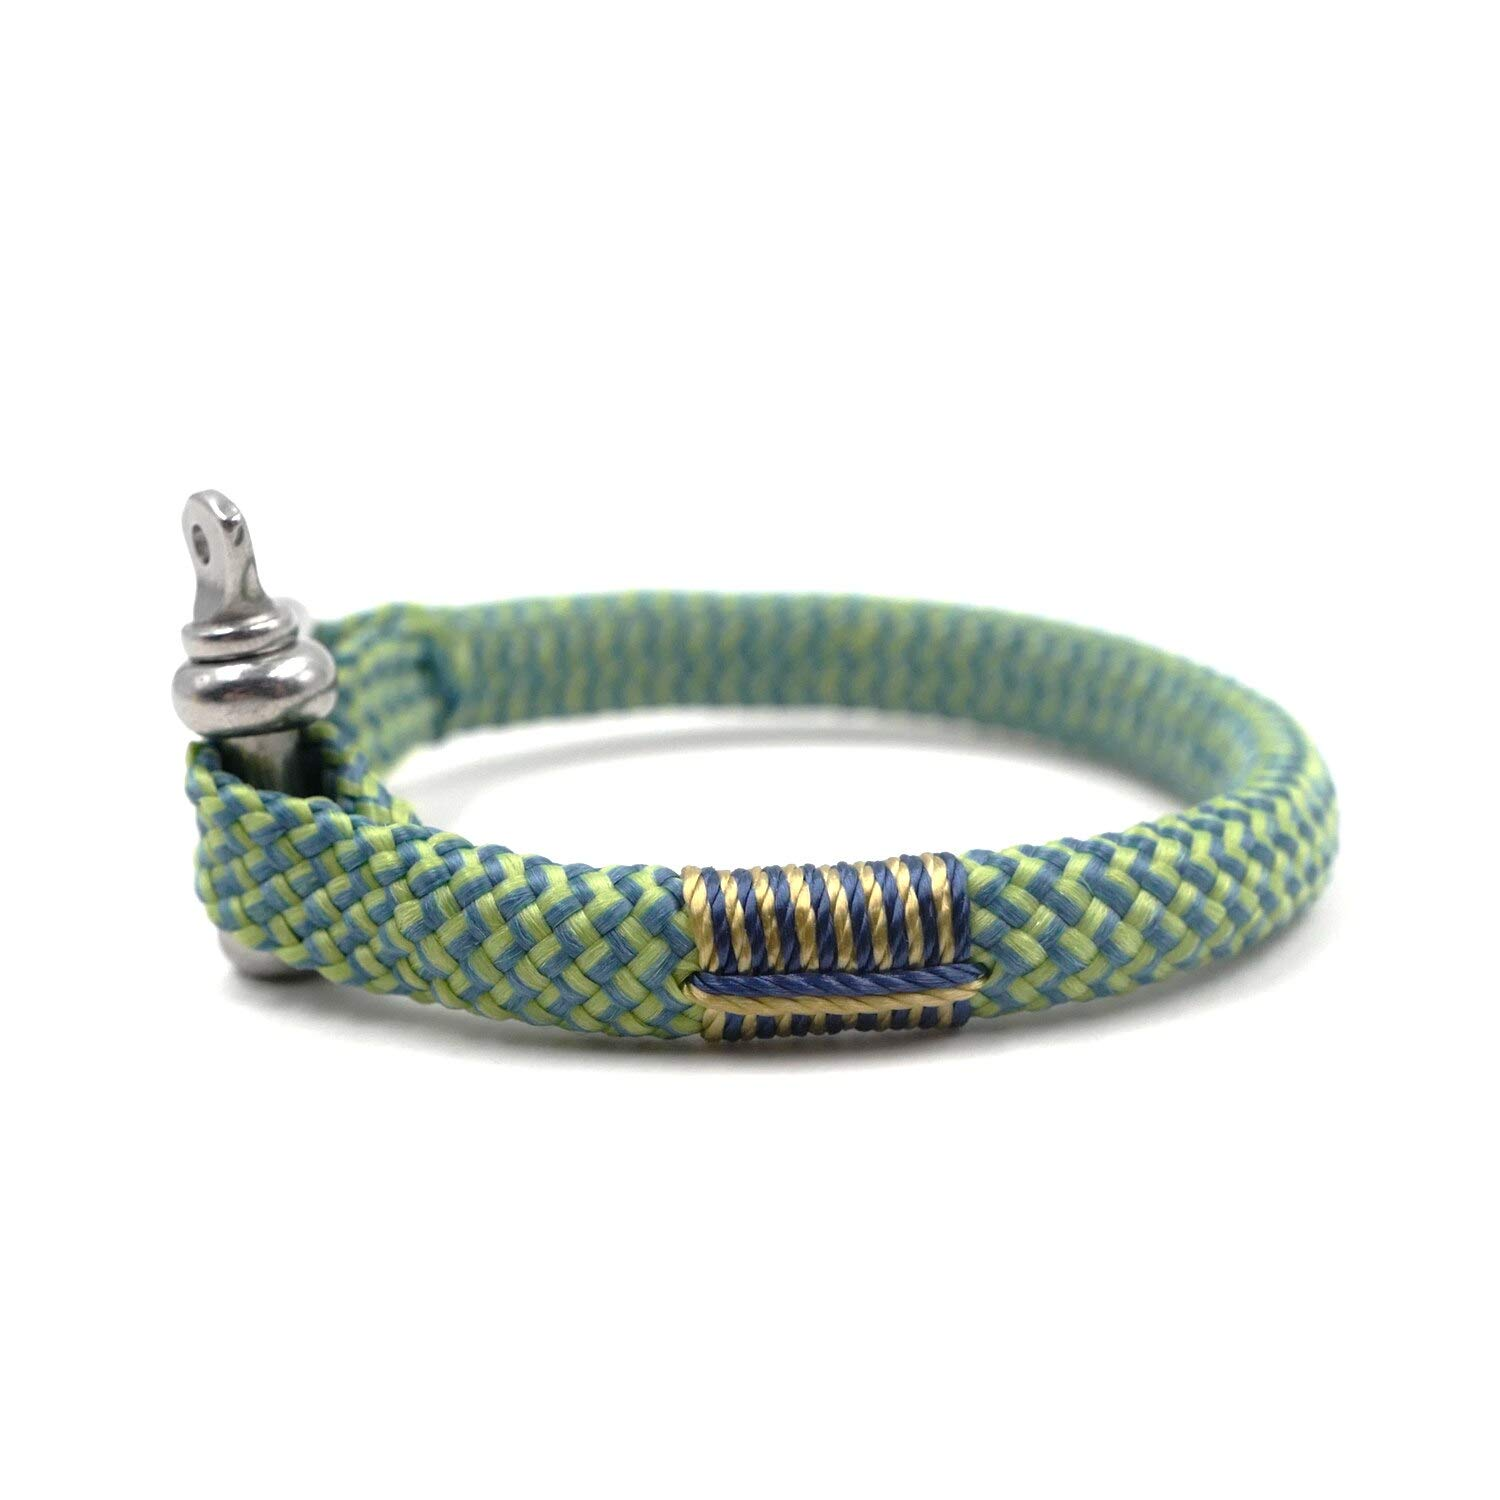 TTHER Black Green BRT-N527 Hand-Made Nautical Braided Bracelet Yachting Rope Military Paracord Bracelet Wristband with D-Shackle Nautical Rope Fence by TTHER